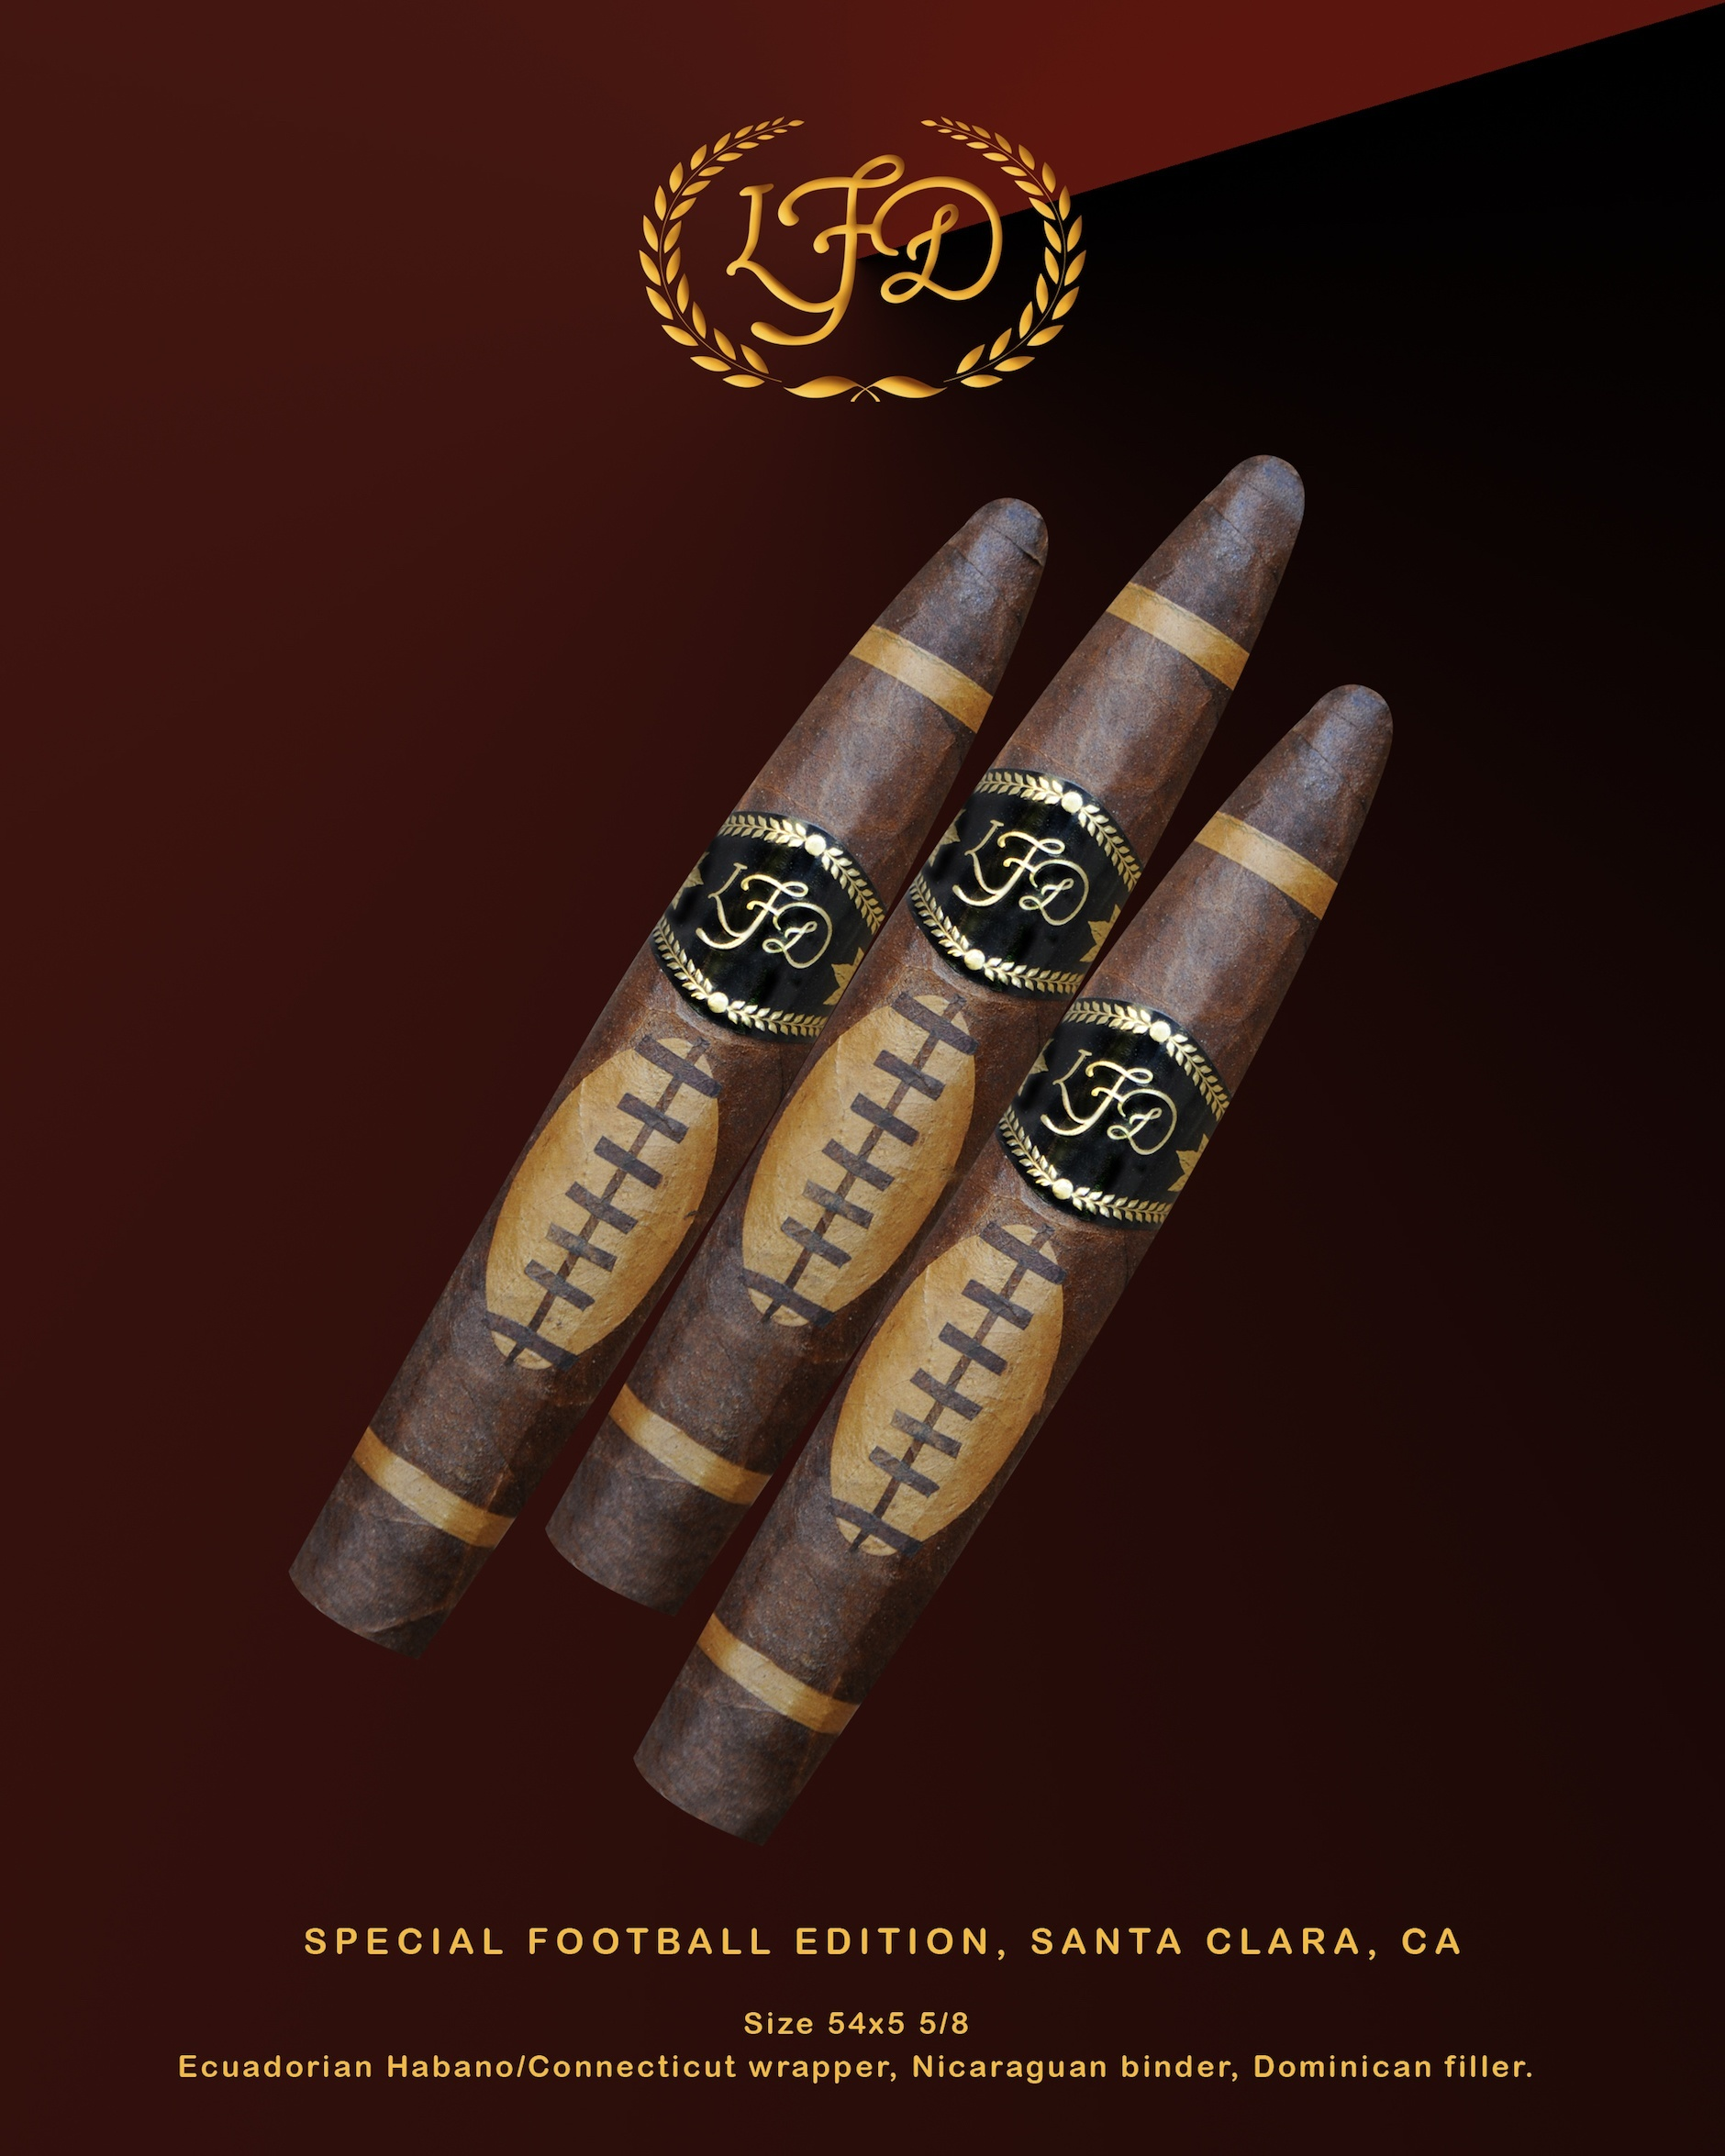 La Flor Dominicana Football Special Edition (2015)